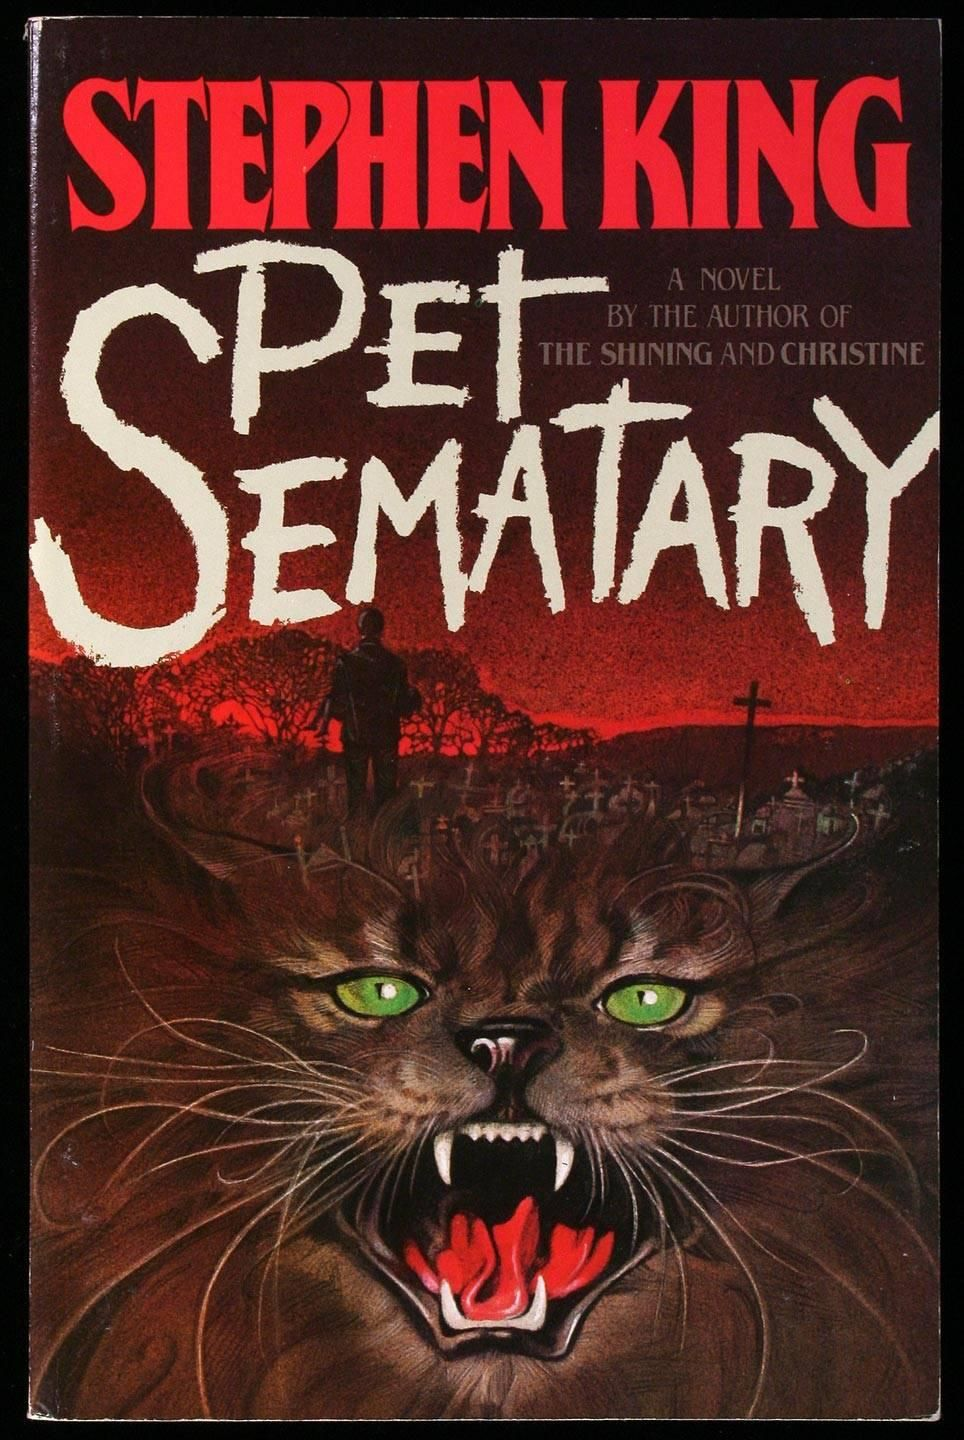 King Pet Sematary (With images) Pet sematary, Stephen